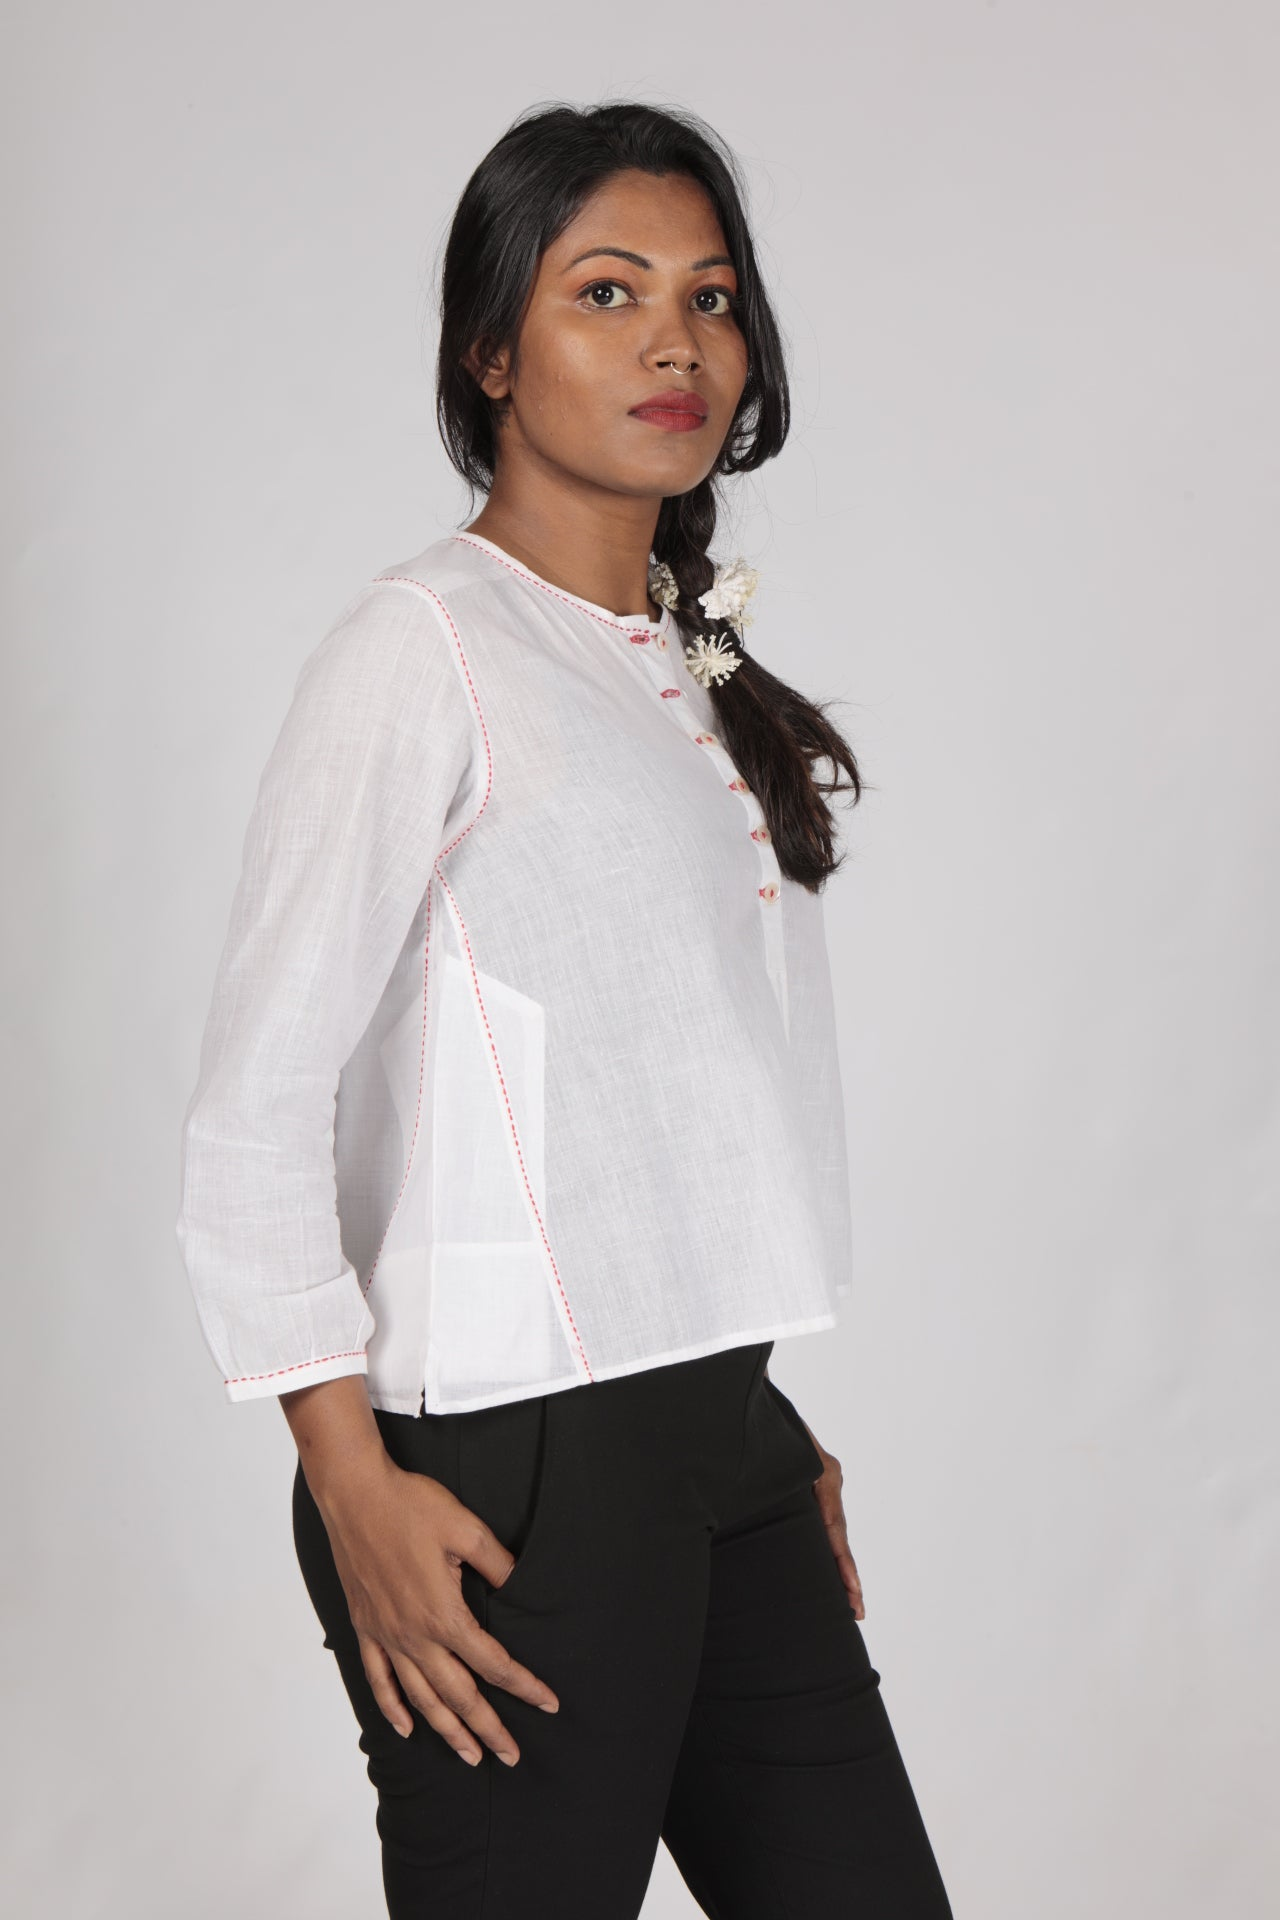 White Fine Khadi Plain Top - JUBA - Upasana Design Studio